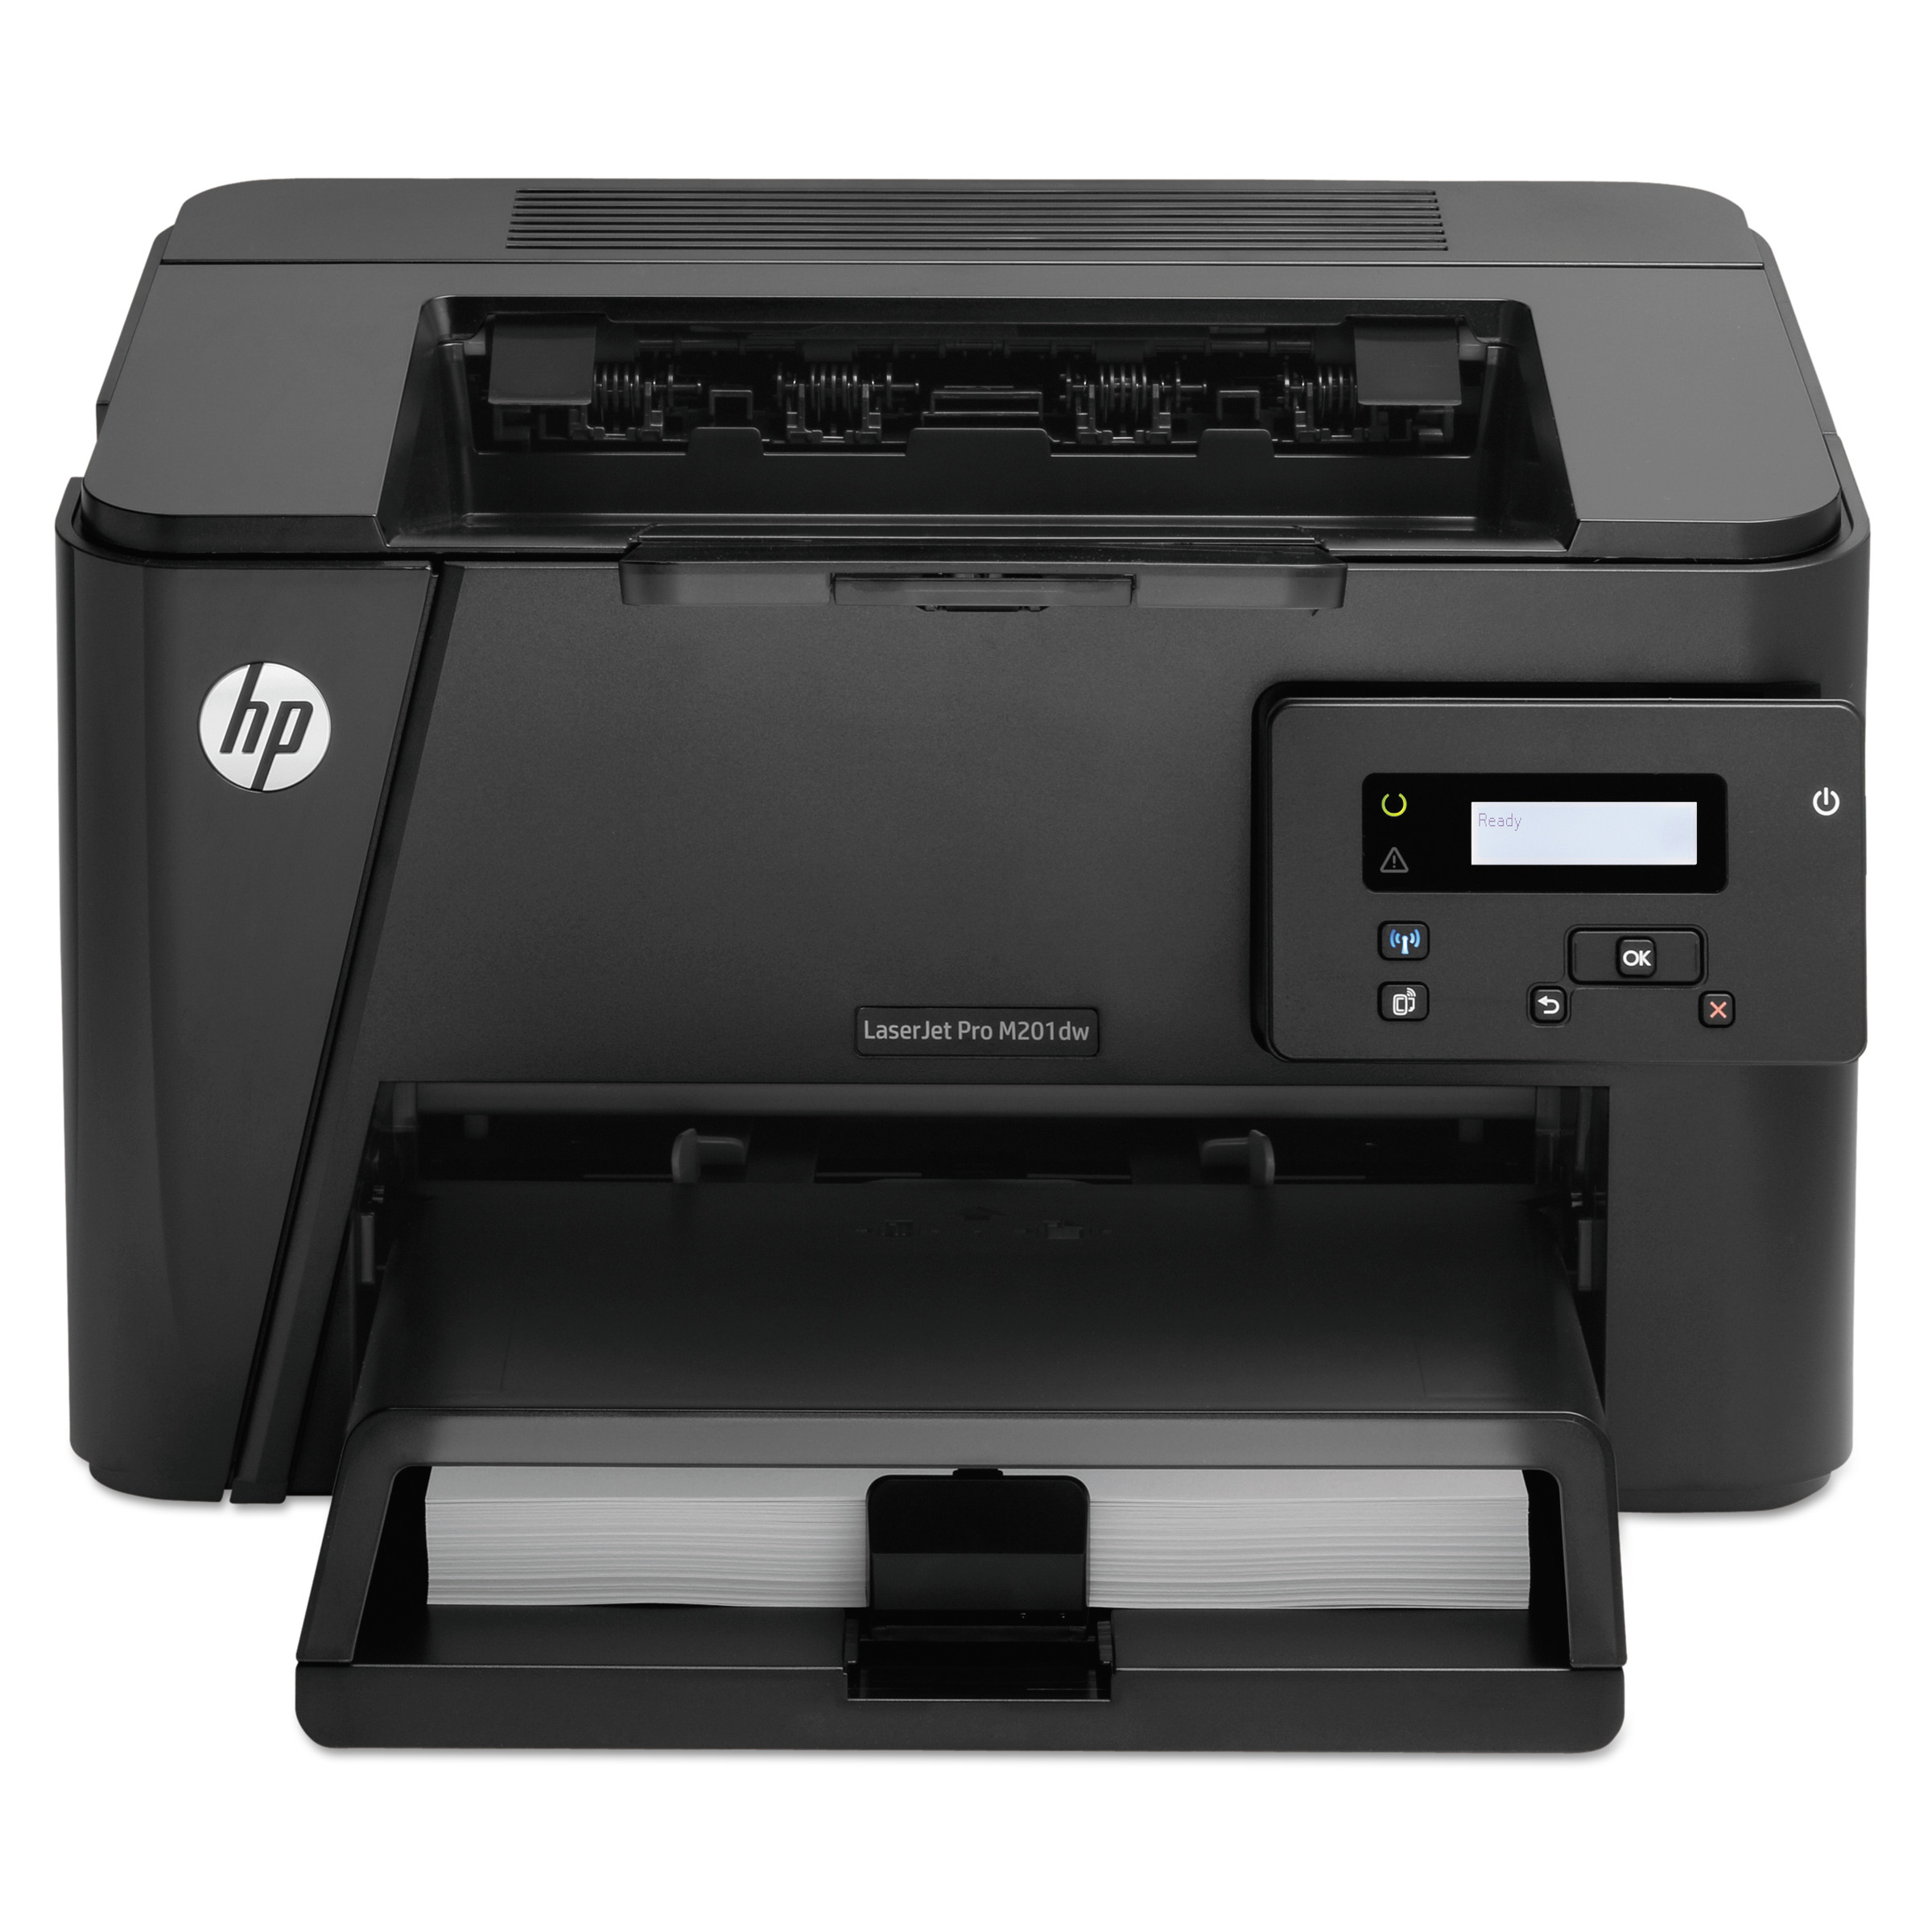 HP LaserJet Pro M201dw Wireless Laser Printer by HP